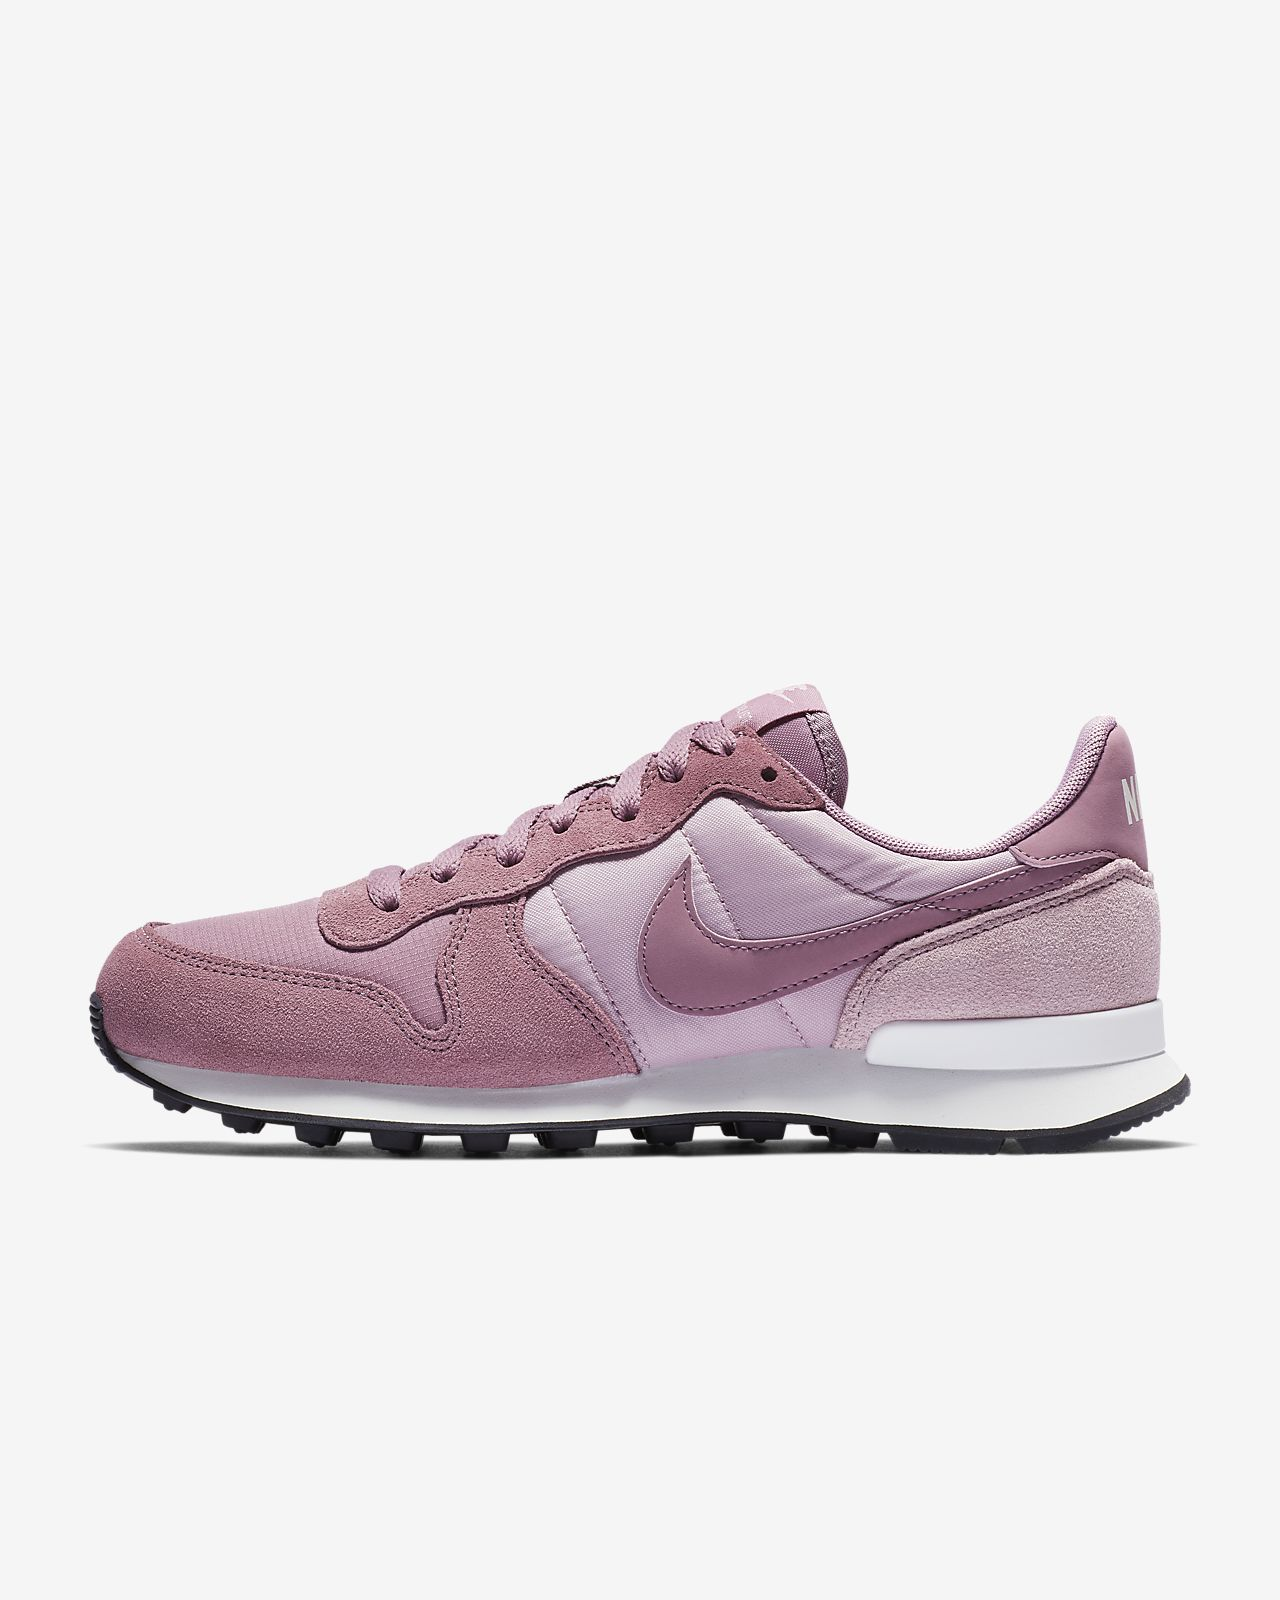 2025054a7e2d Nike Internationalist Women s Shoe. Nike.com GB